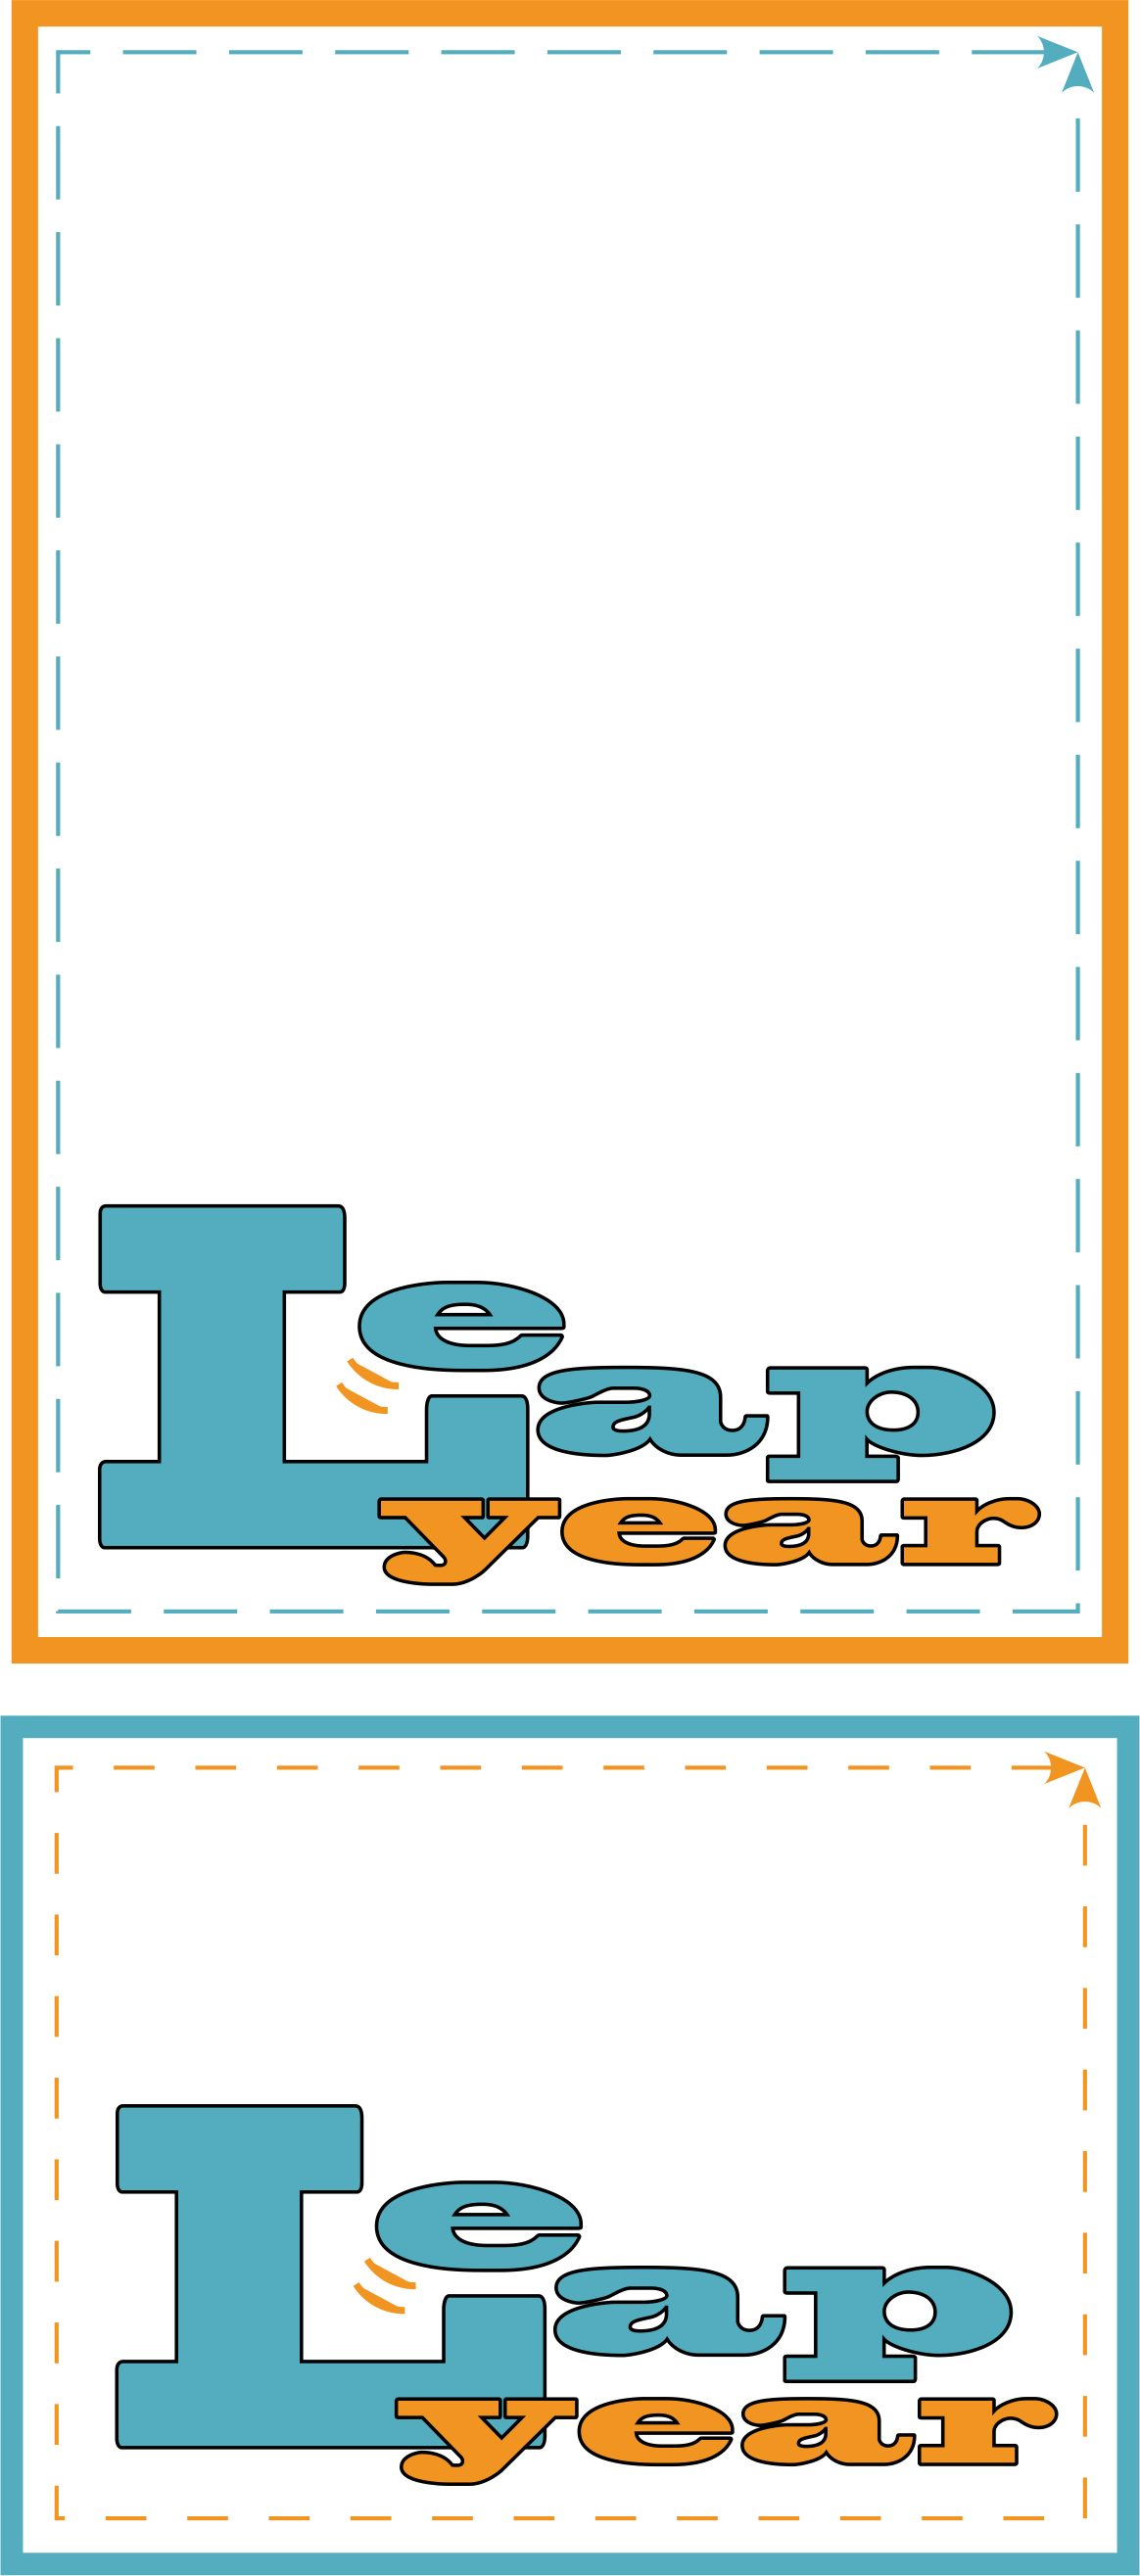 image regarding Leap Year Printable titled Bounce Yr Printables spystickyinkymess